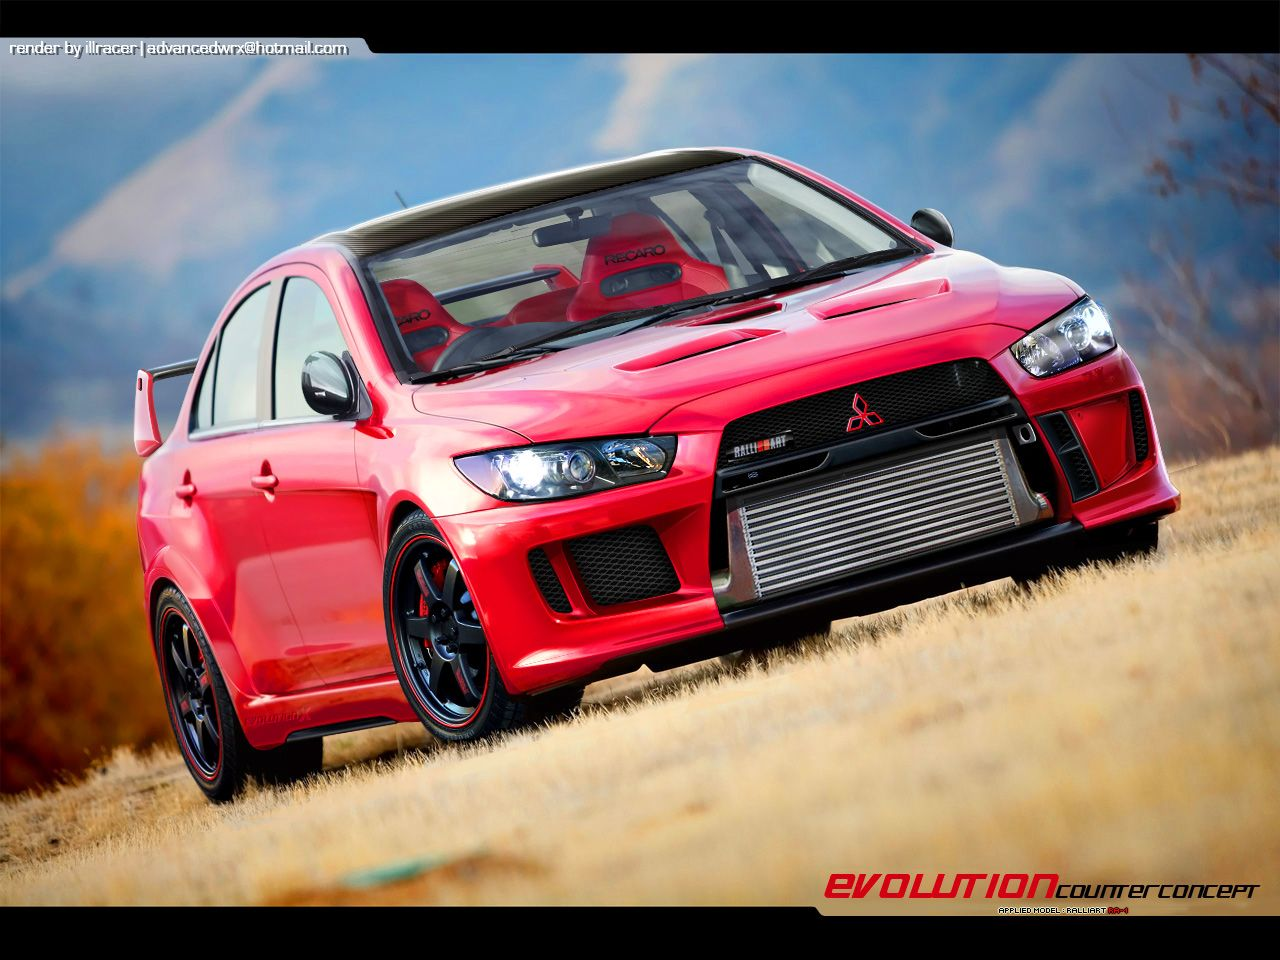 mitsubishi evo x ralliart edition i love the exposed intercooler on these things one - Mitsubishi Evolution 11